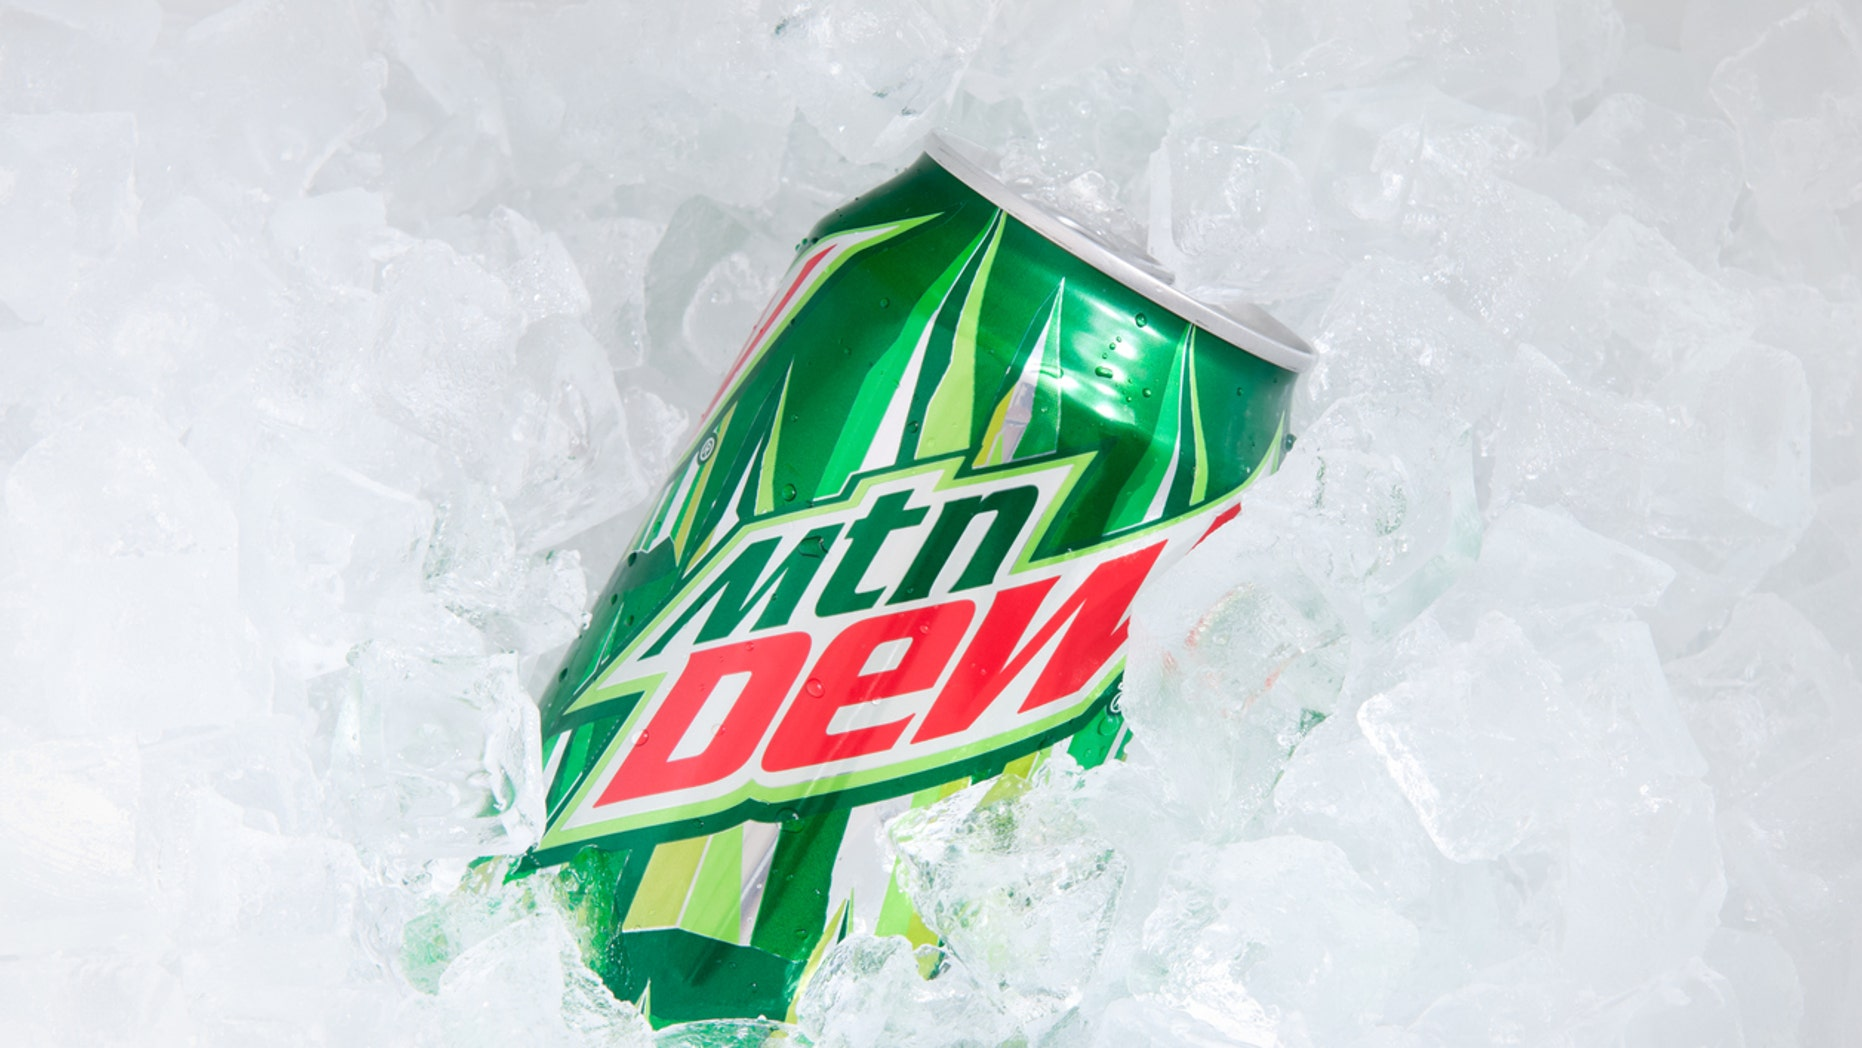 """""""Orlando, USA - November 8, 2011: A can of Mountain Dew buried in ice cubes. Focus on the can. Mountain Dew is a soft drink produced by Pepsi-Co . It contains caffeine. The drink was introduced in the 1960s."""""""